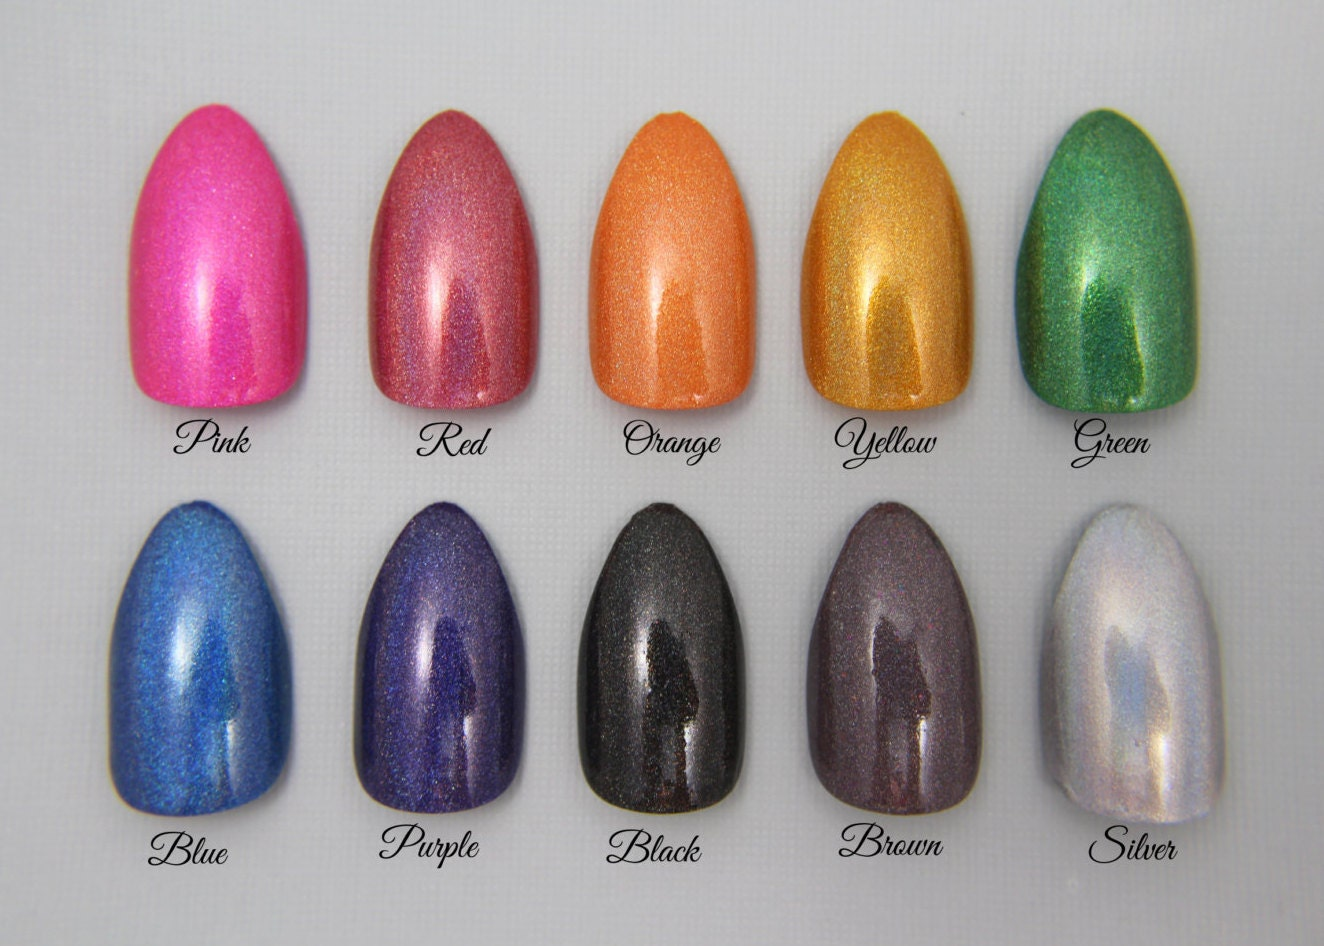 Almond Holographic Nails - You Choose The Color! | Press On Nails ...